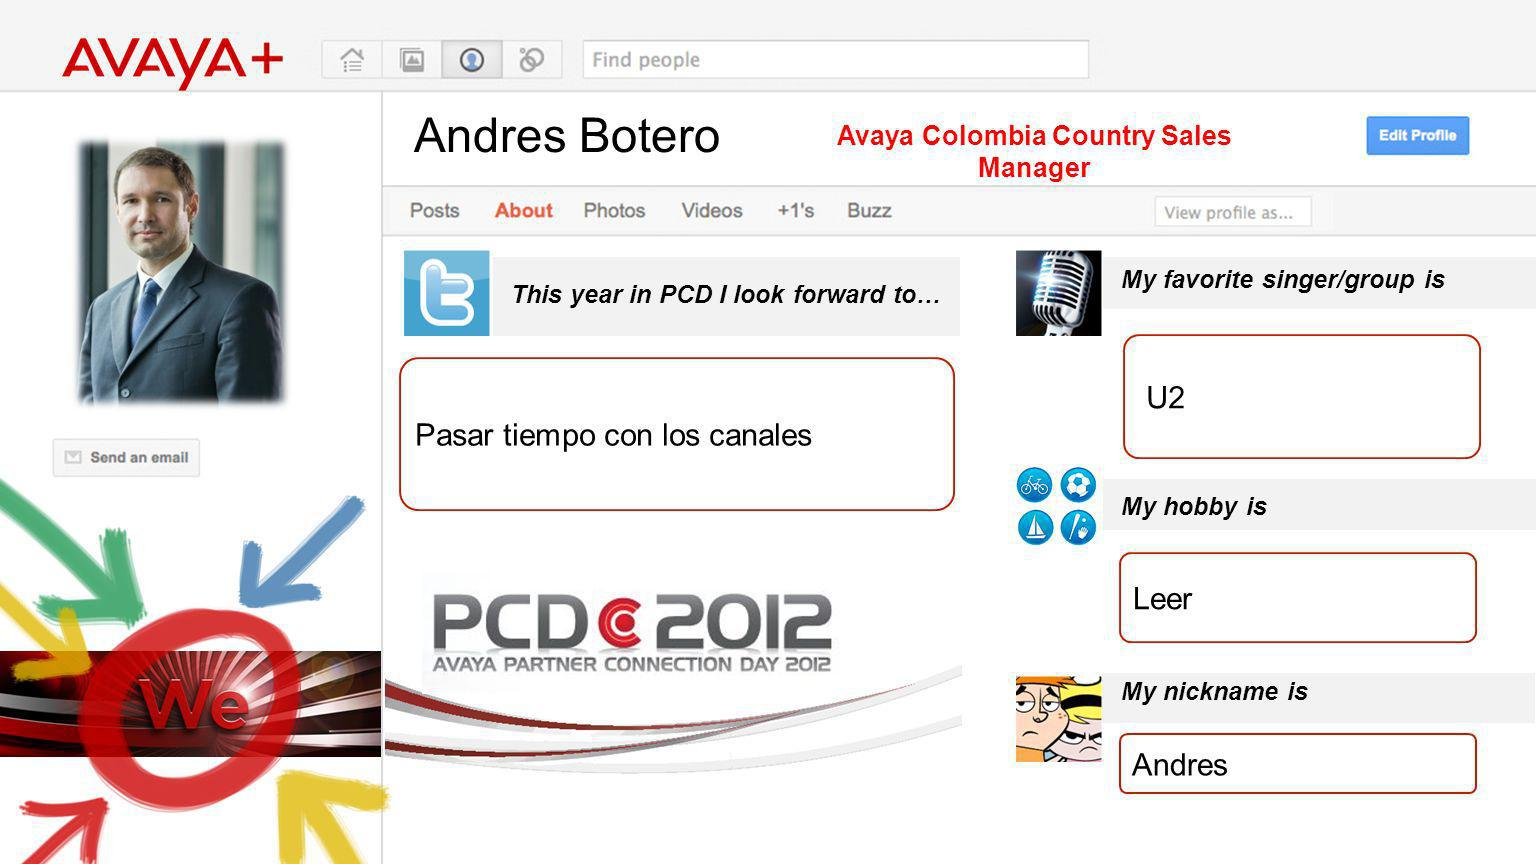 Andres Botero This year in PCD I look forward to… Avaya Colombia Country Sales Manager Pasar tiempo con los canales My favorite singer/group is My hob